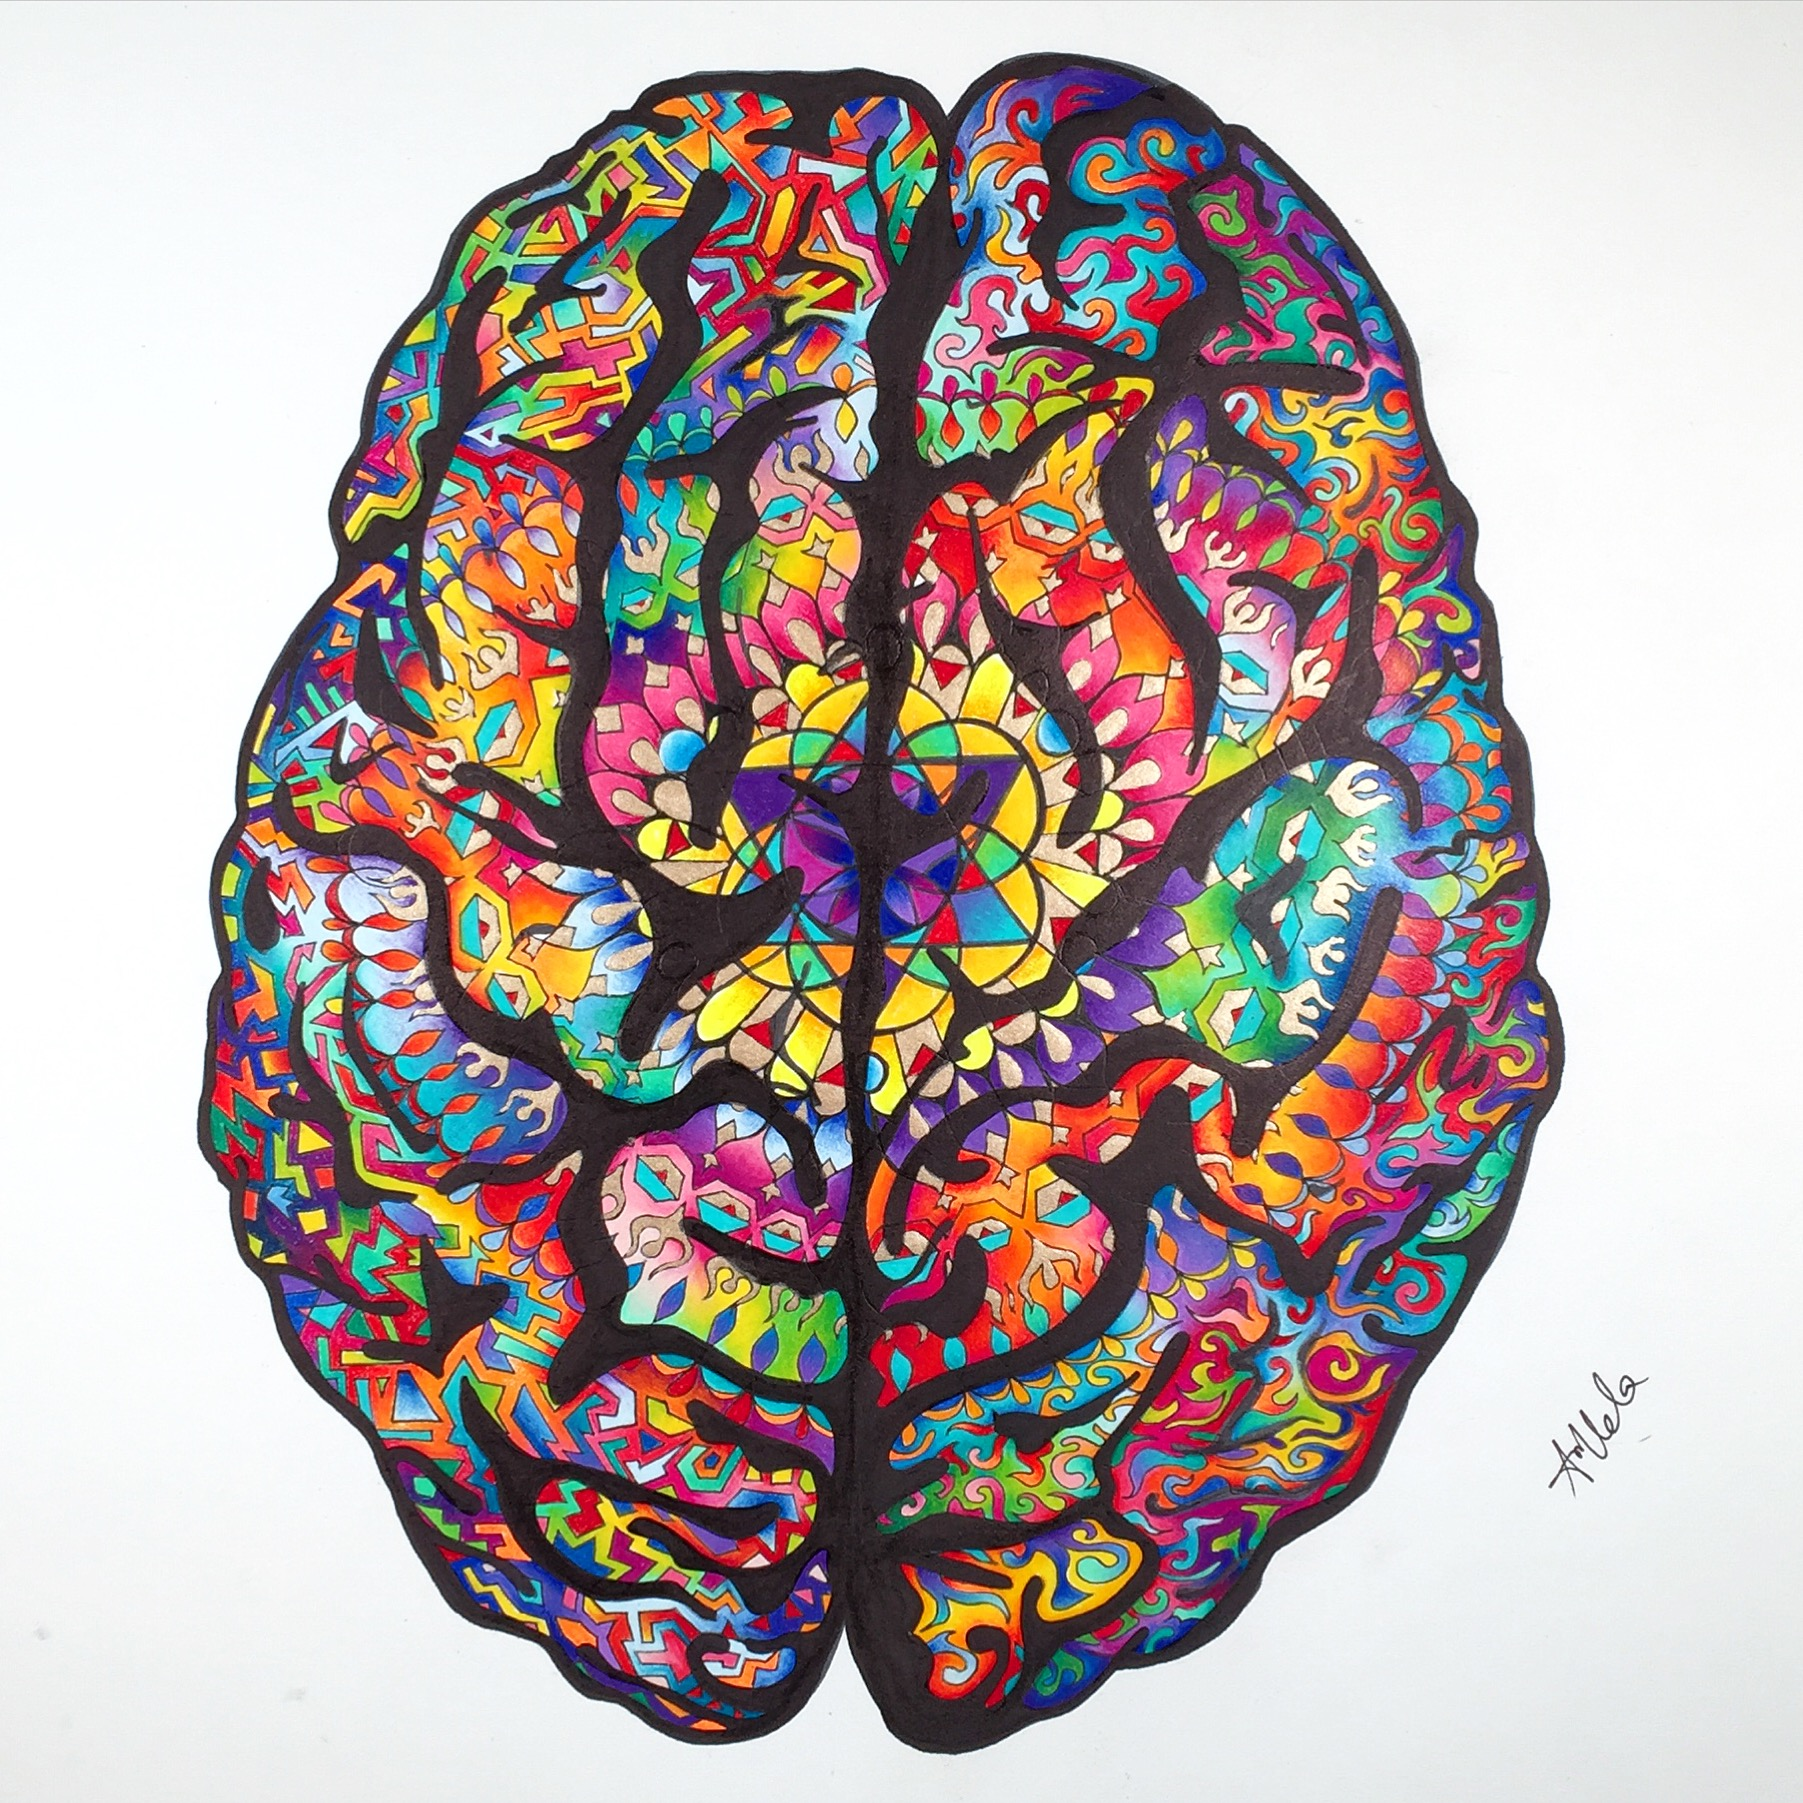 Brain Pencil Drawing | Free download on ClipArtMag